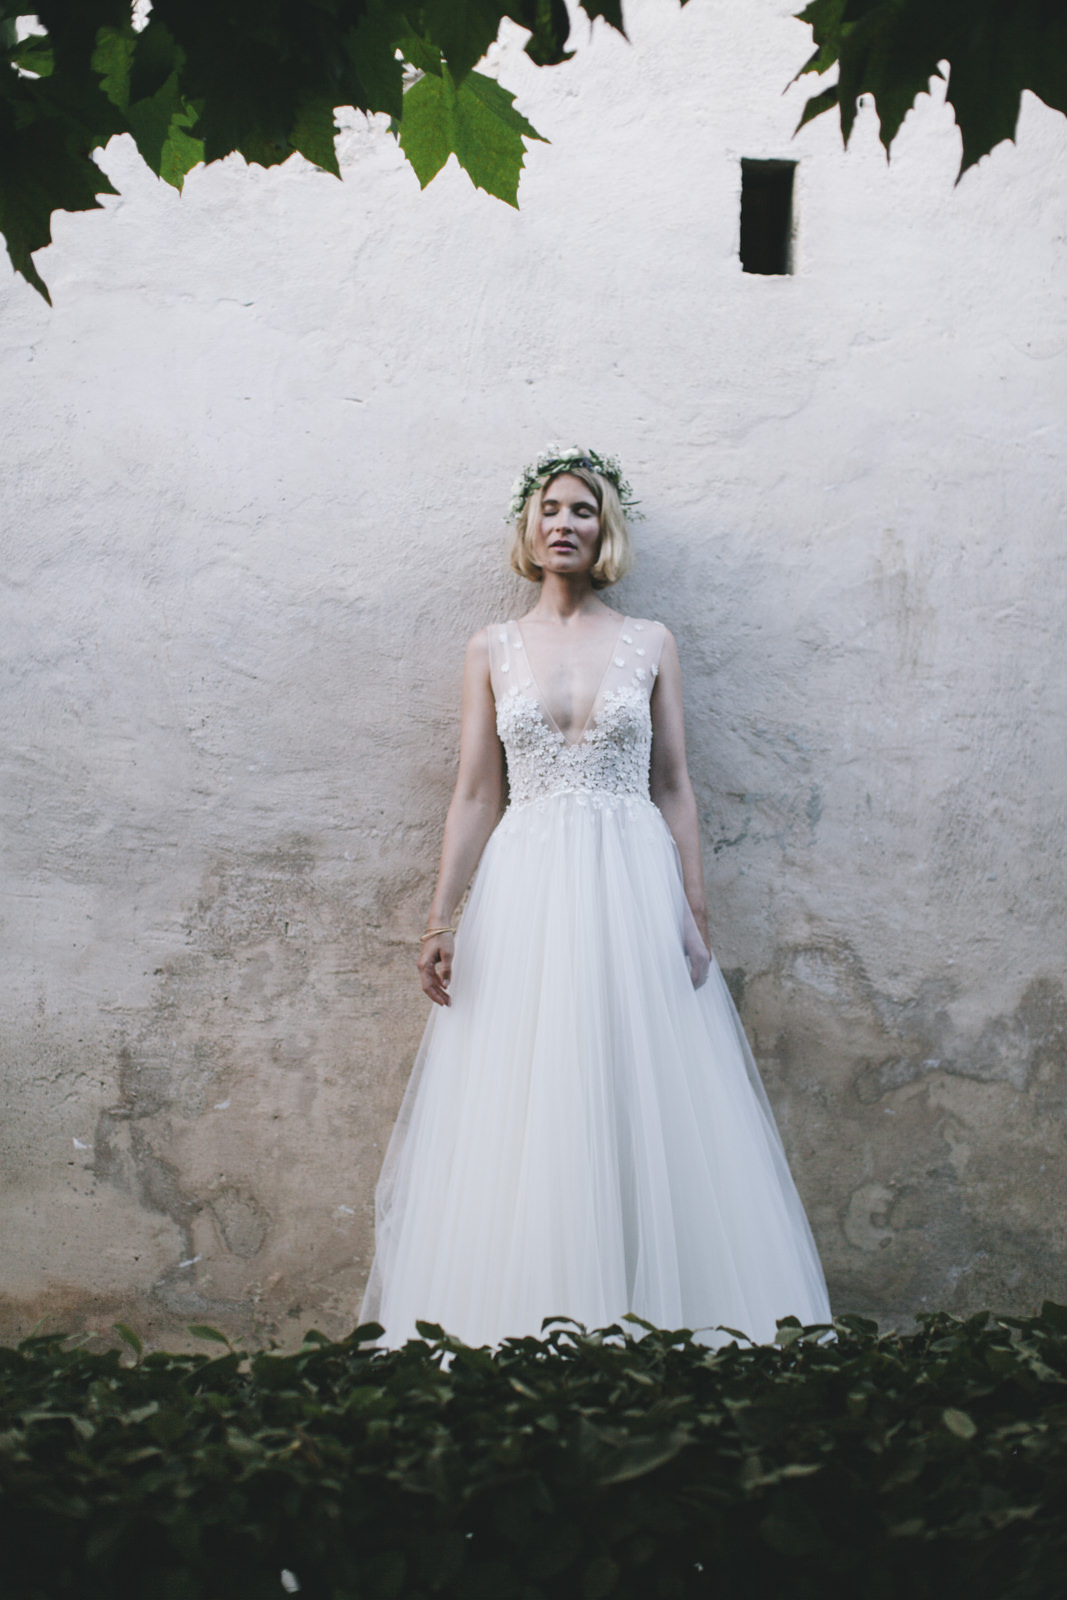 the bride lining against a white wall